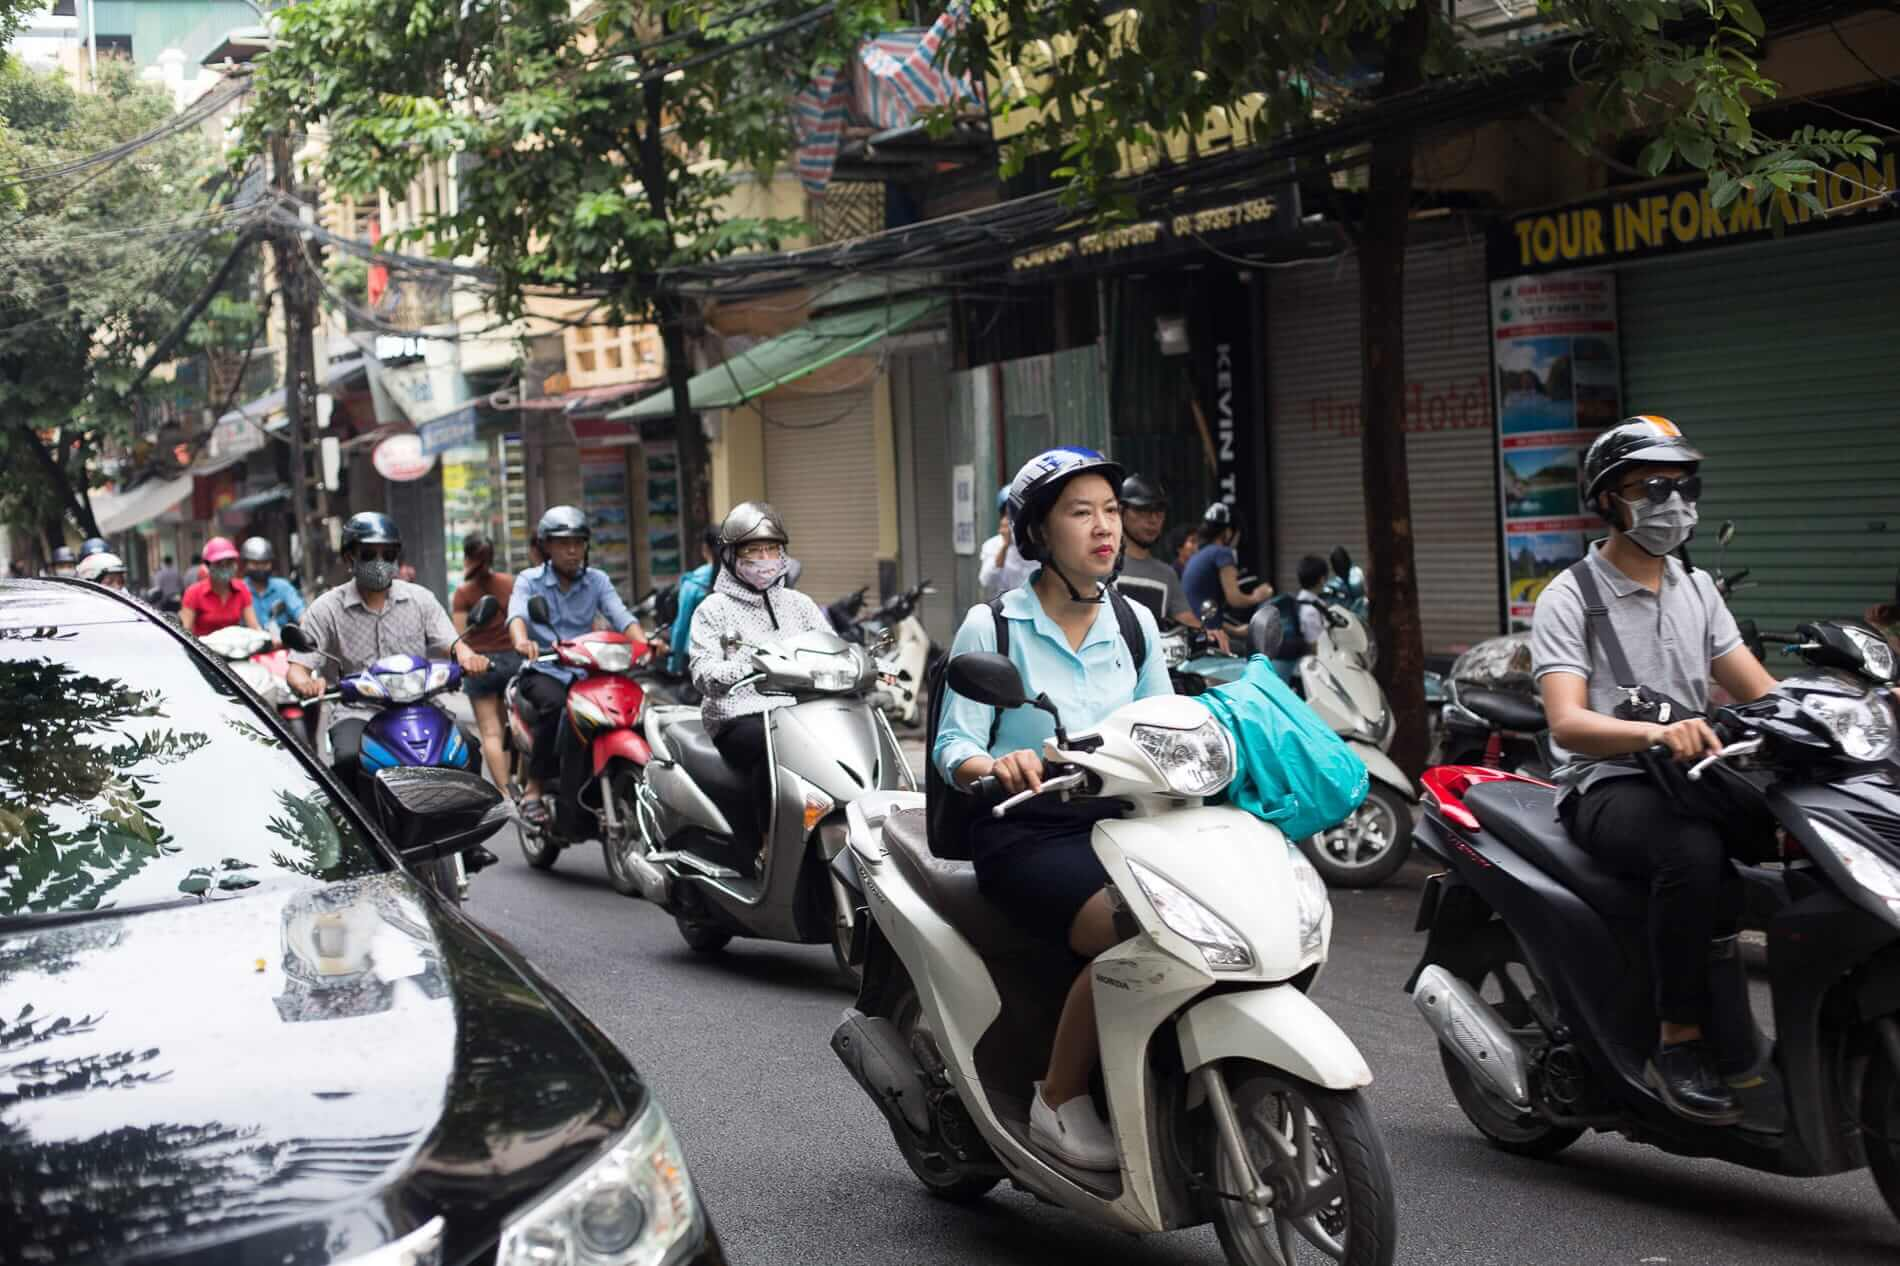 A busy day in Hanoi City